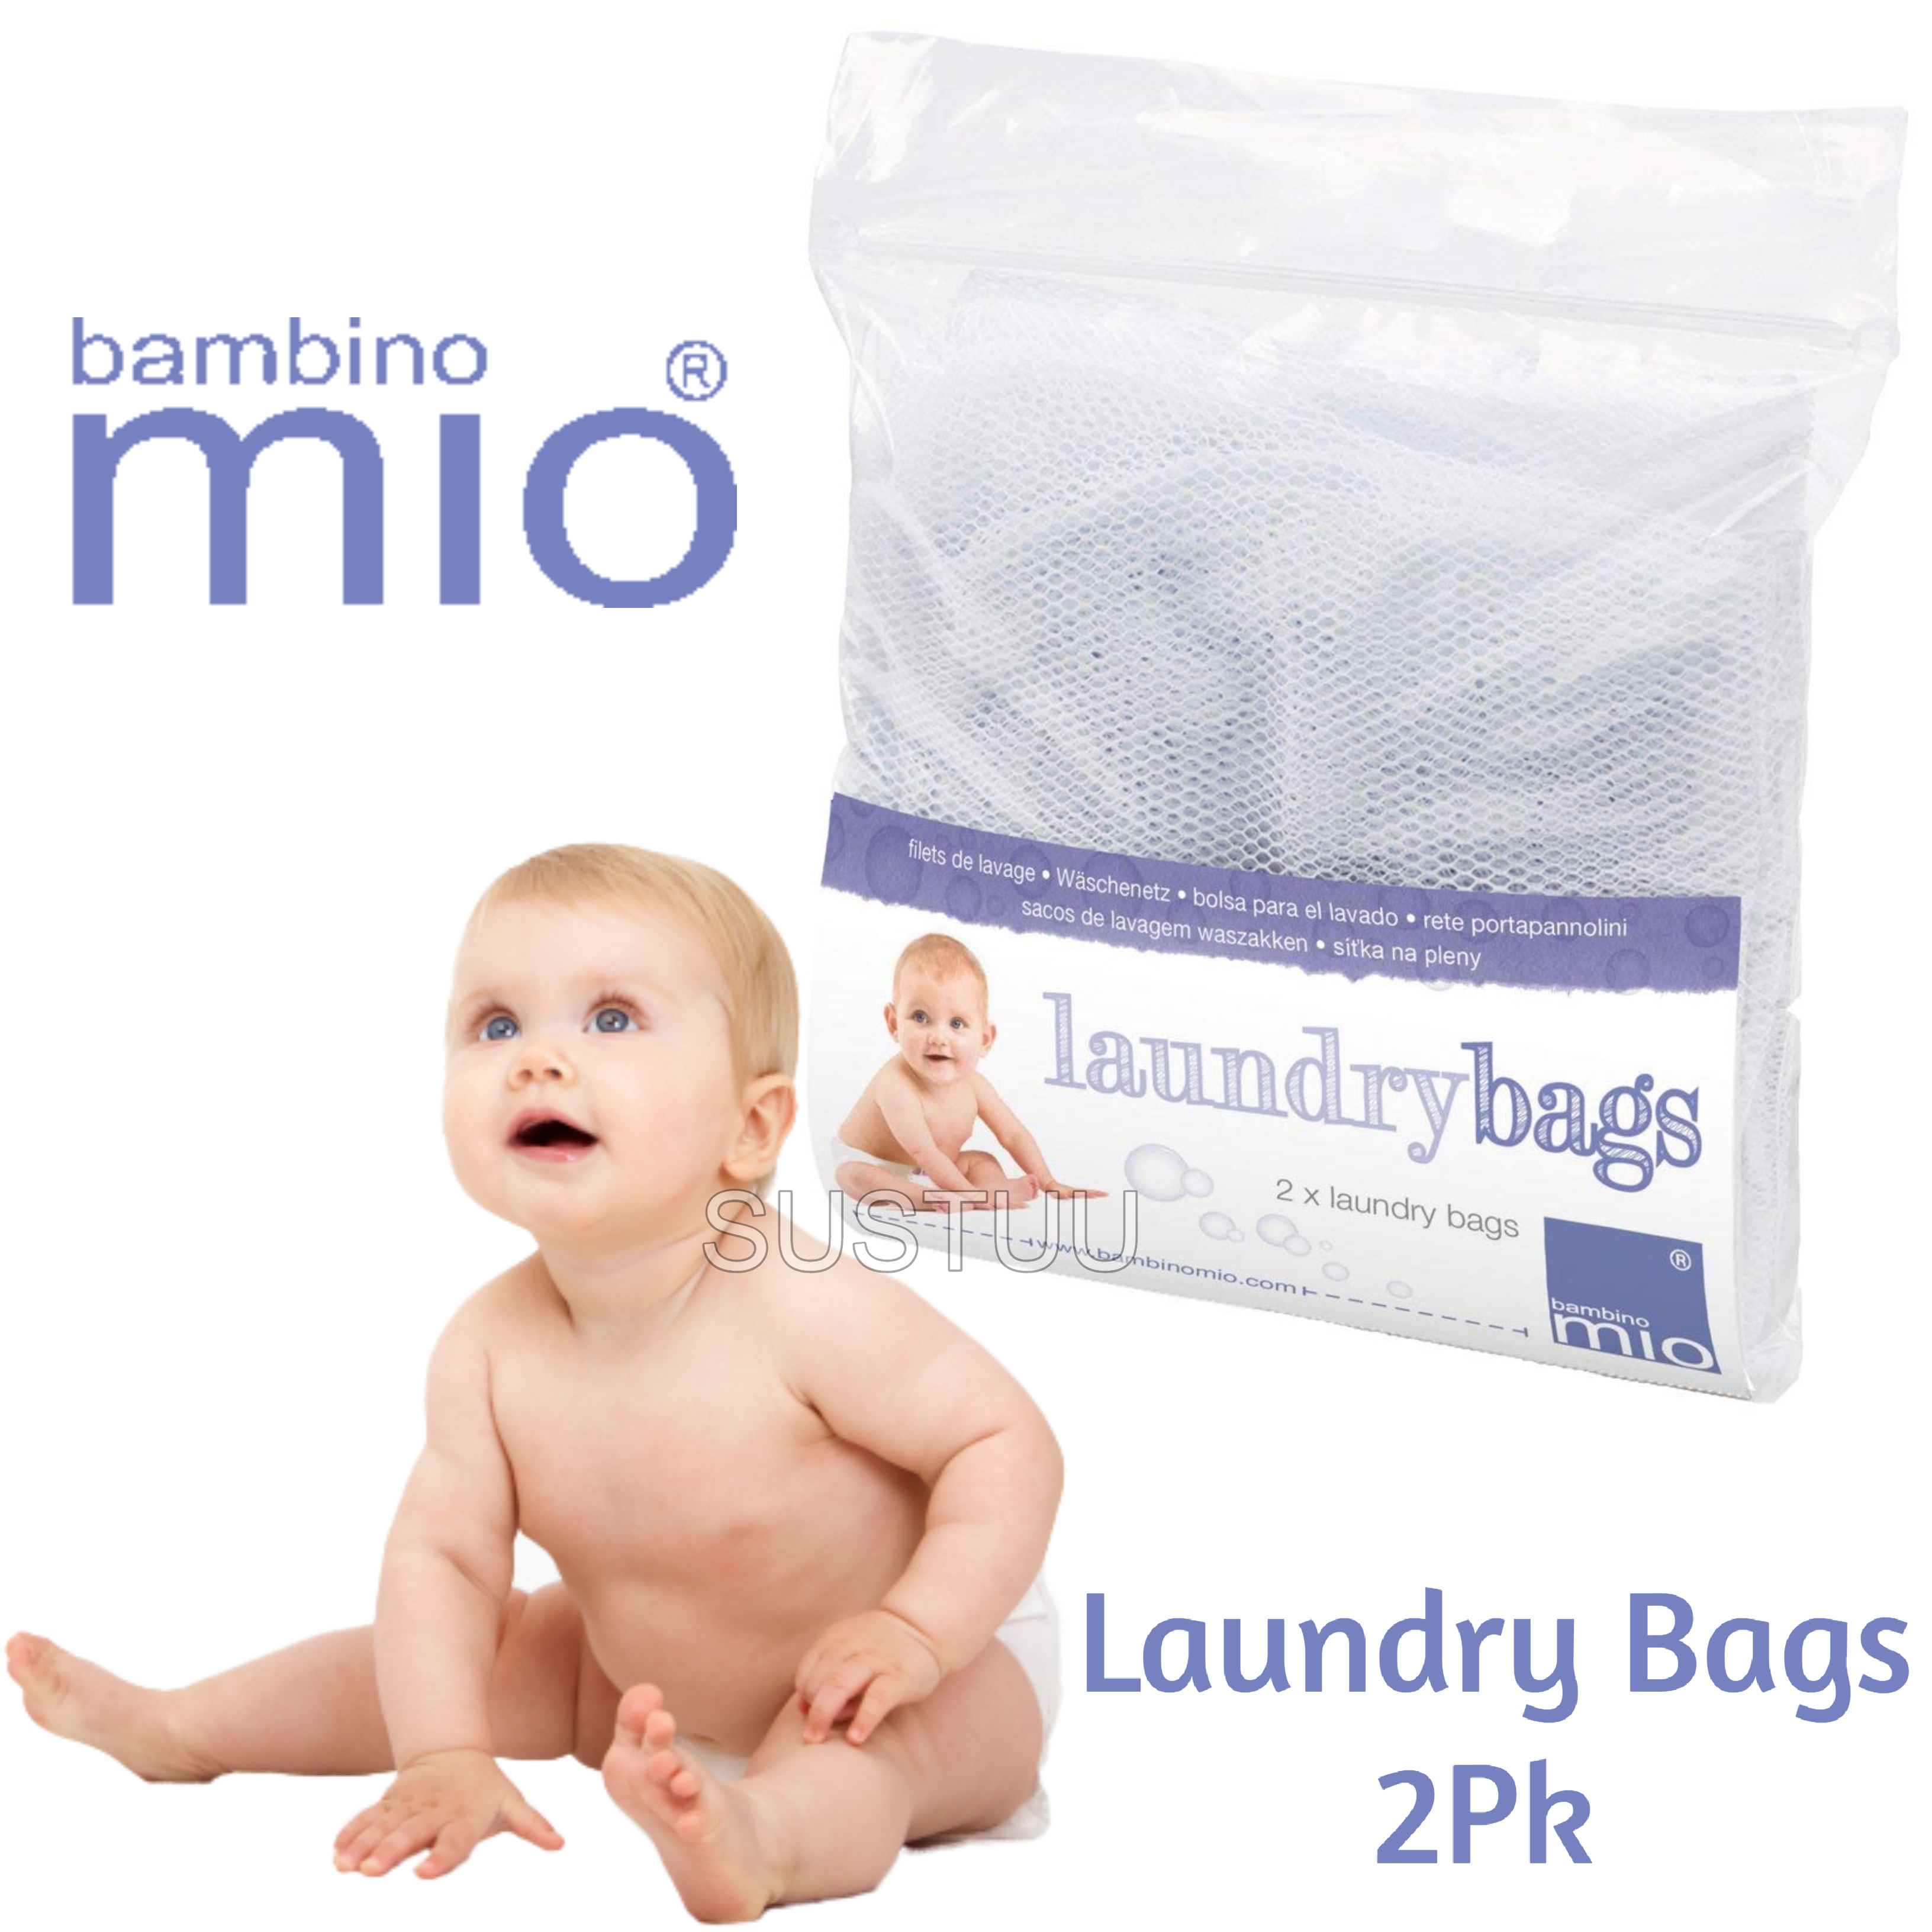 Bambino Mio Large Laundry Bags|Baby/Kid's Reusable Diaper Storage Bucket Net|2pk